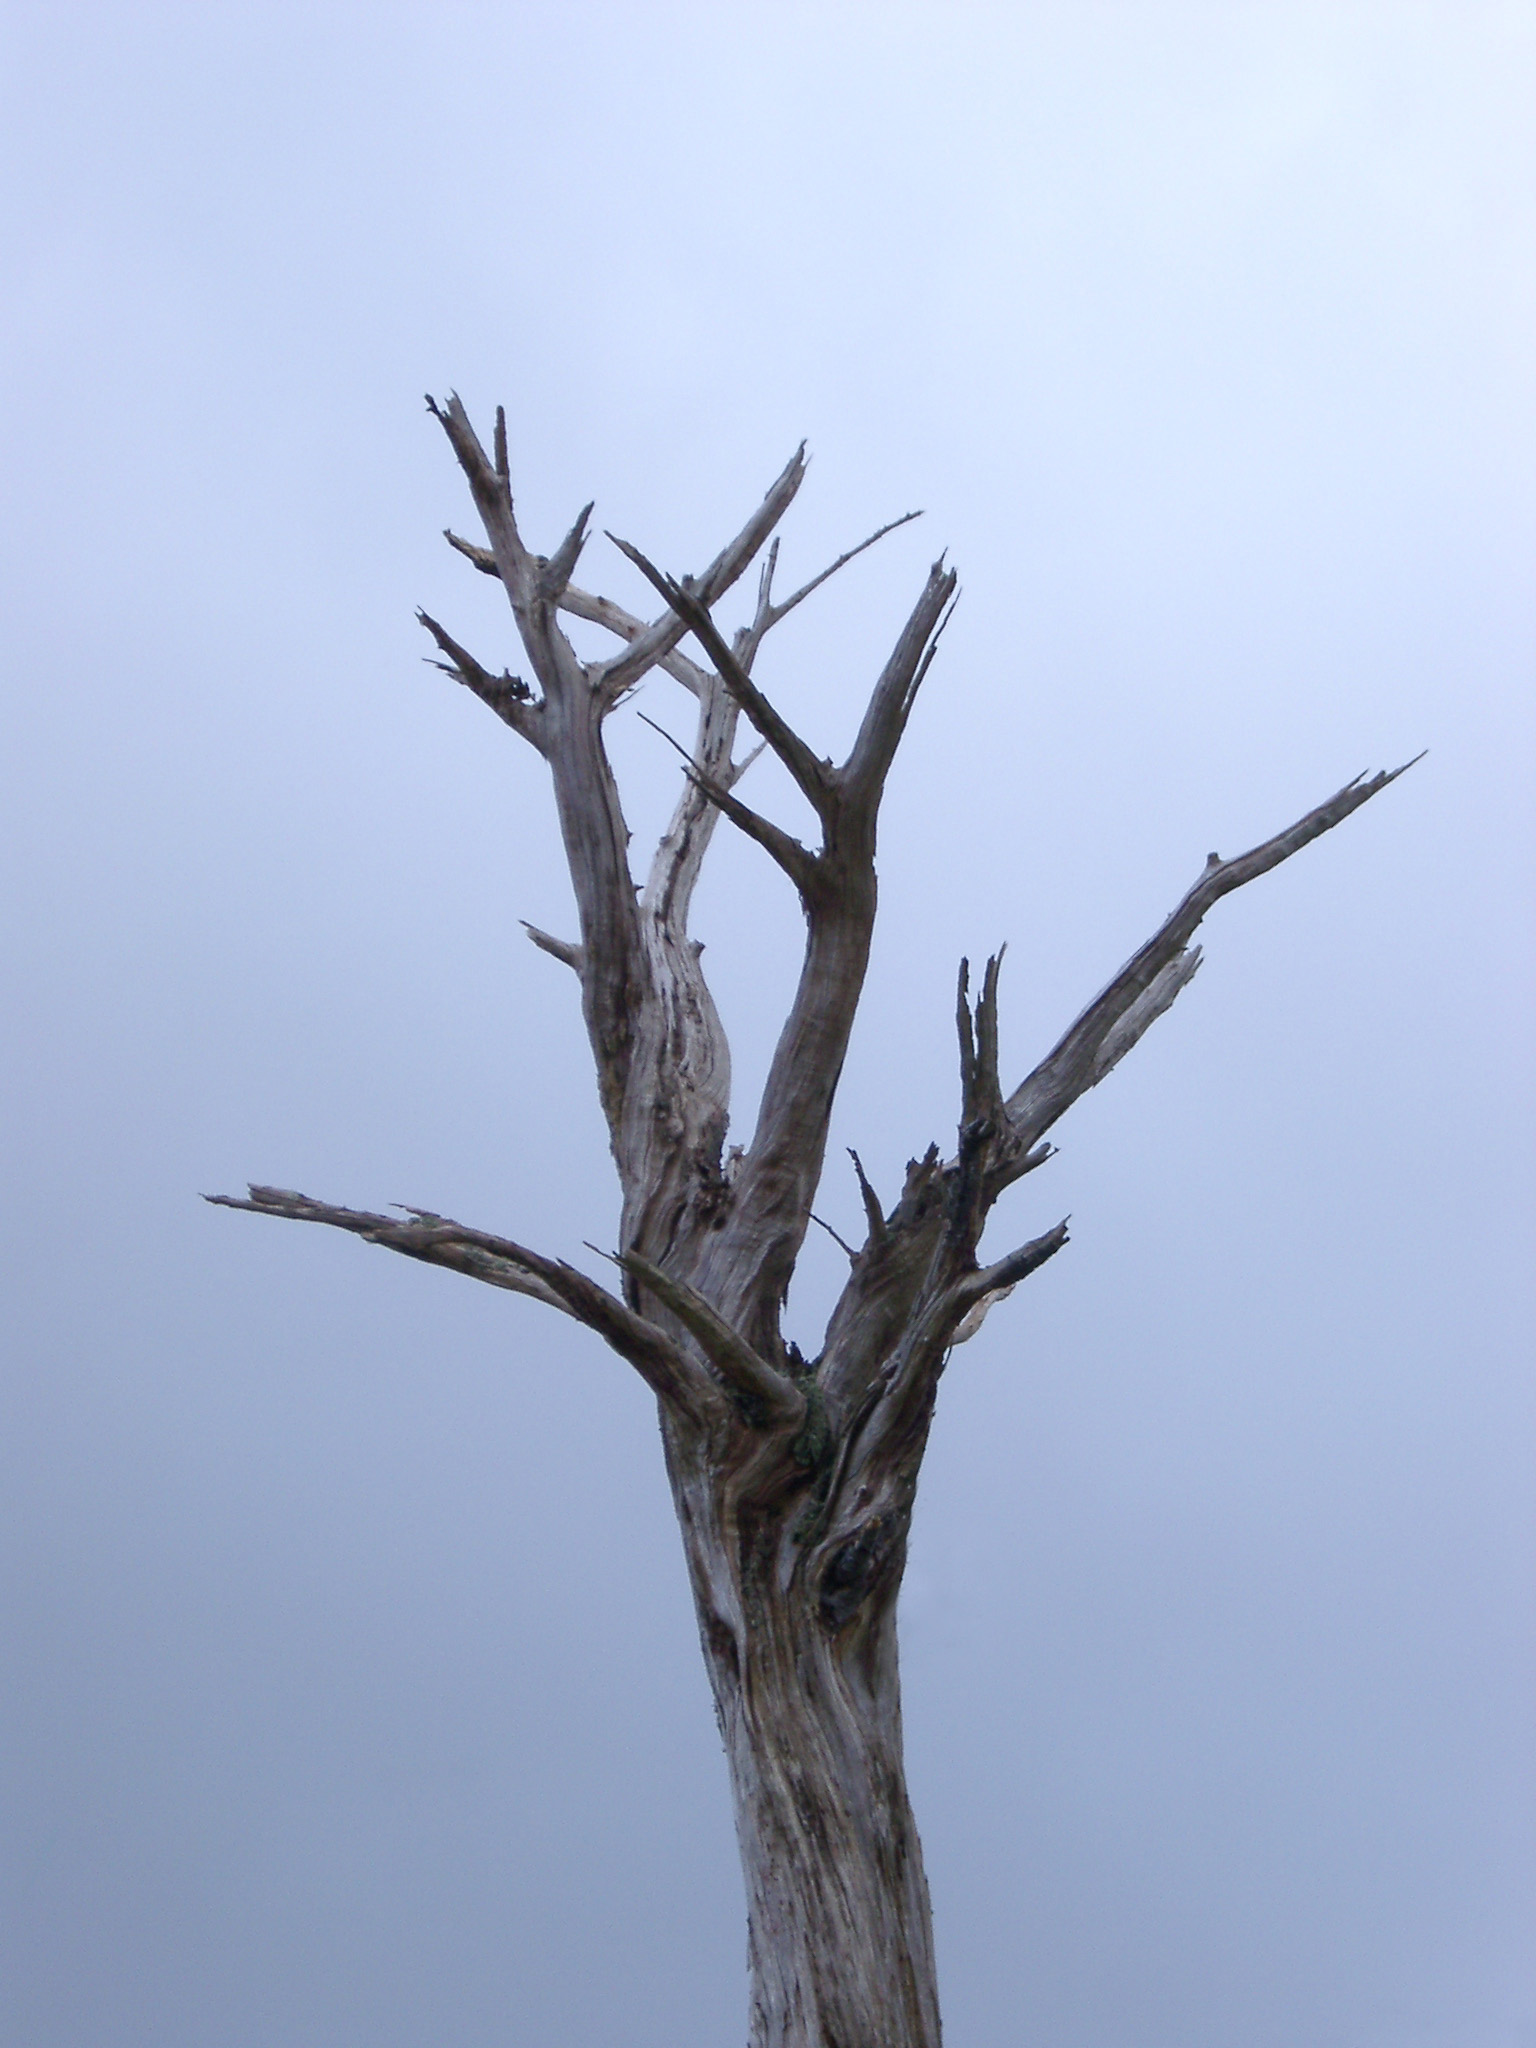 Branches and trunk of a dead tree on a stormy misty day in Wales